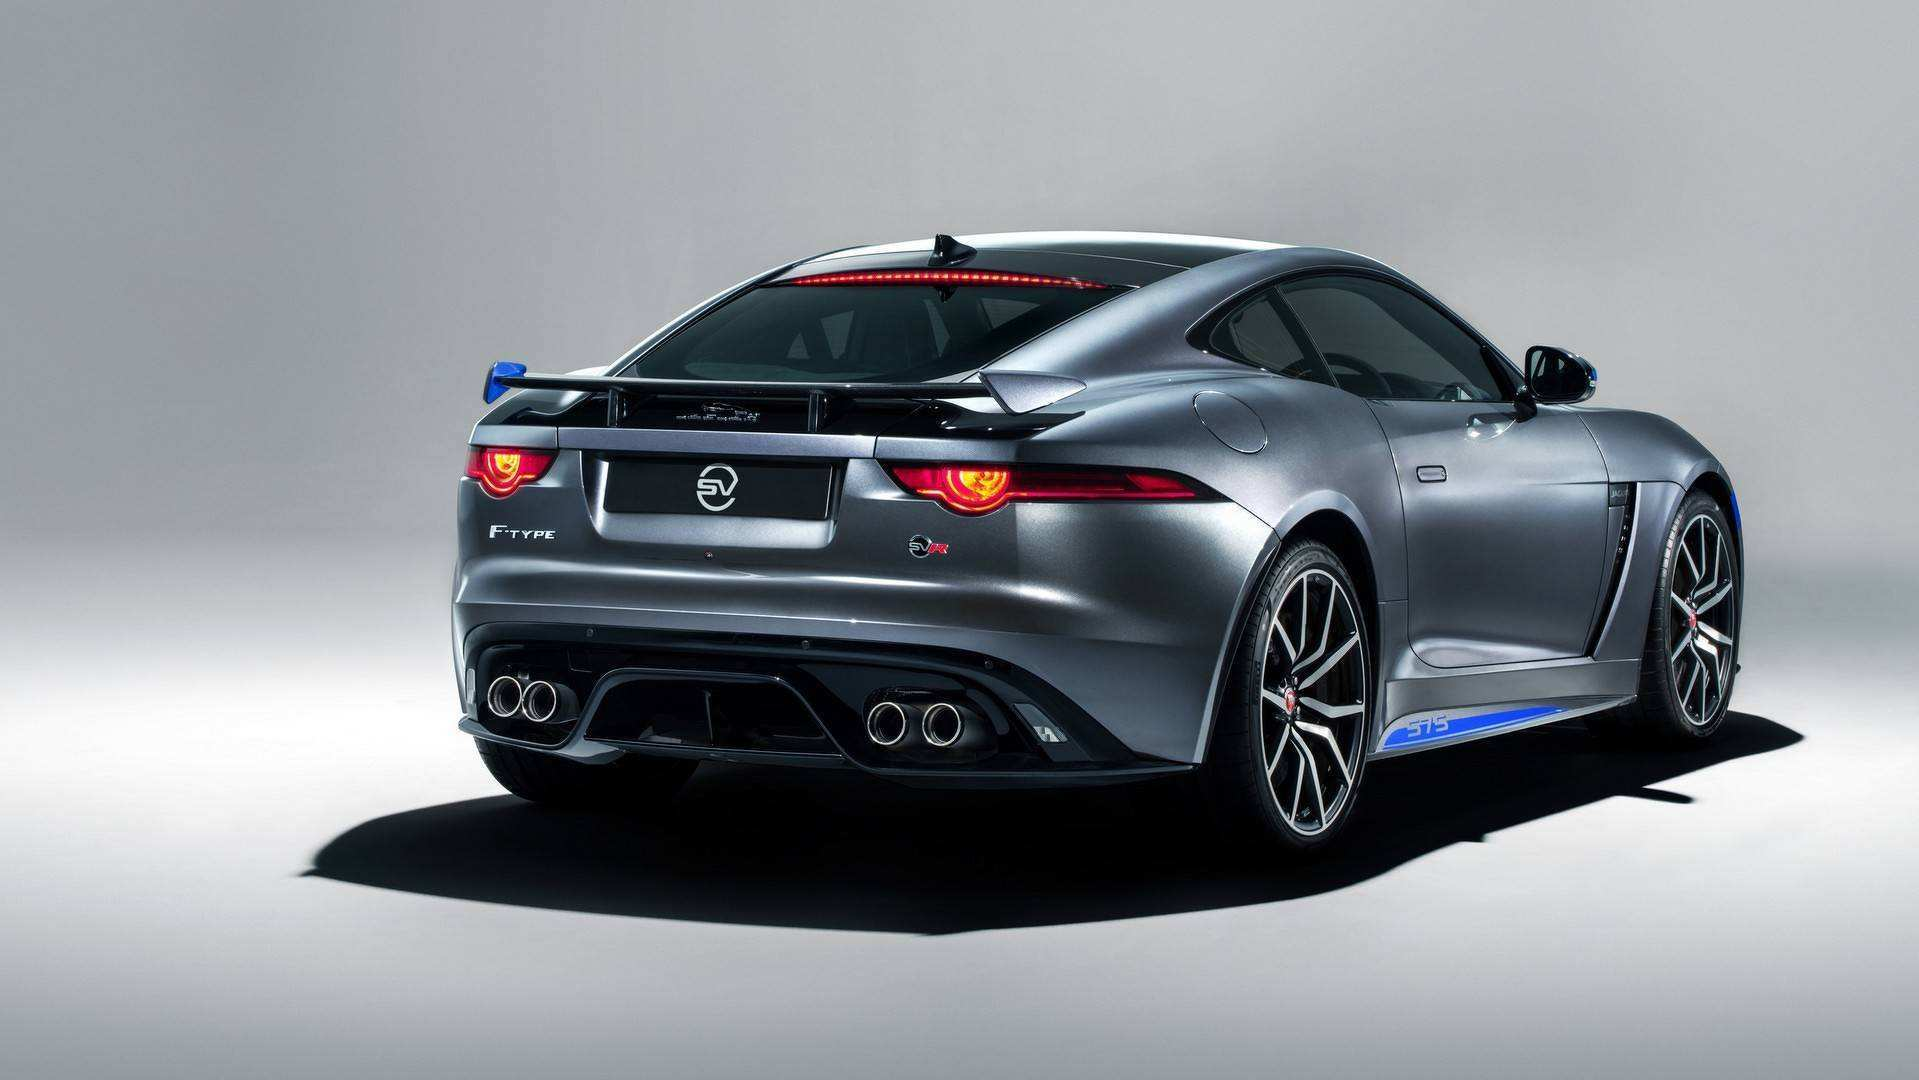 81 The 2020 Jaguar F Type Svr Exterior by 2020 Jaguar F Type Svr